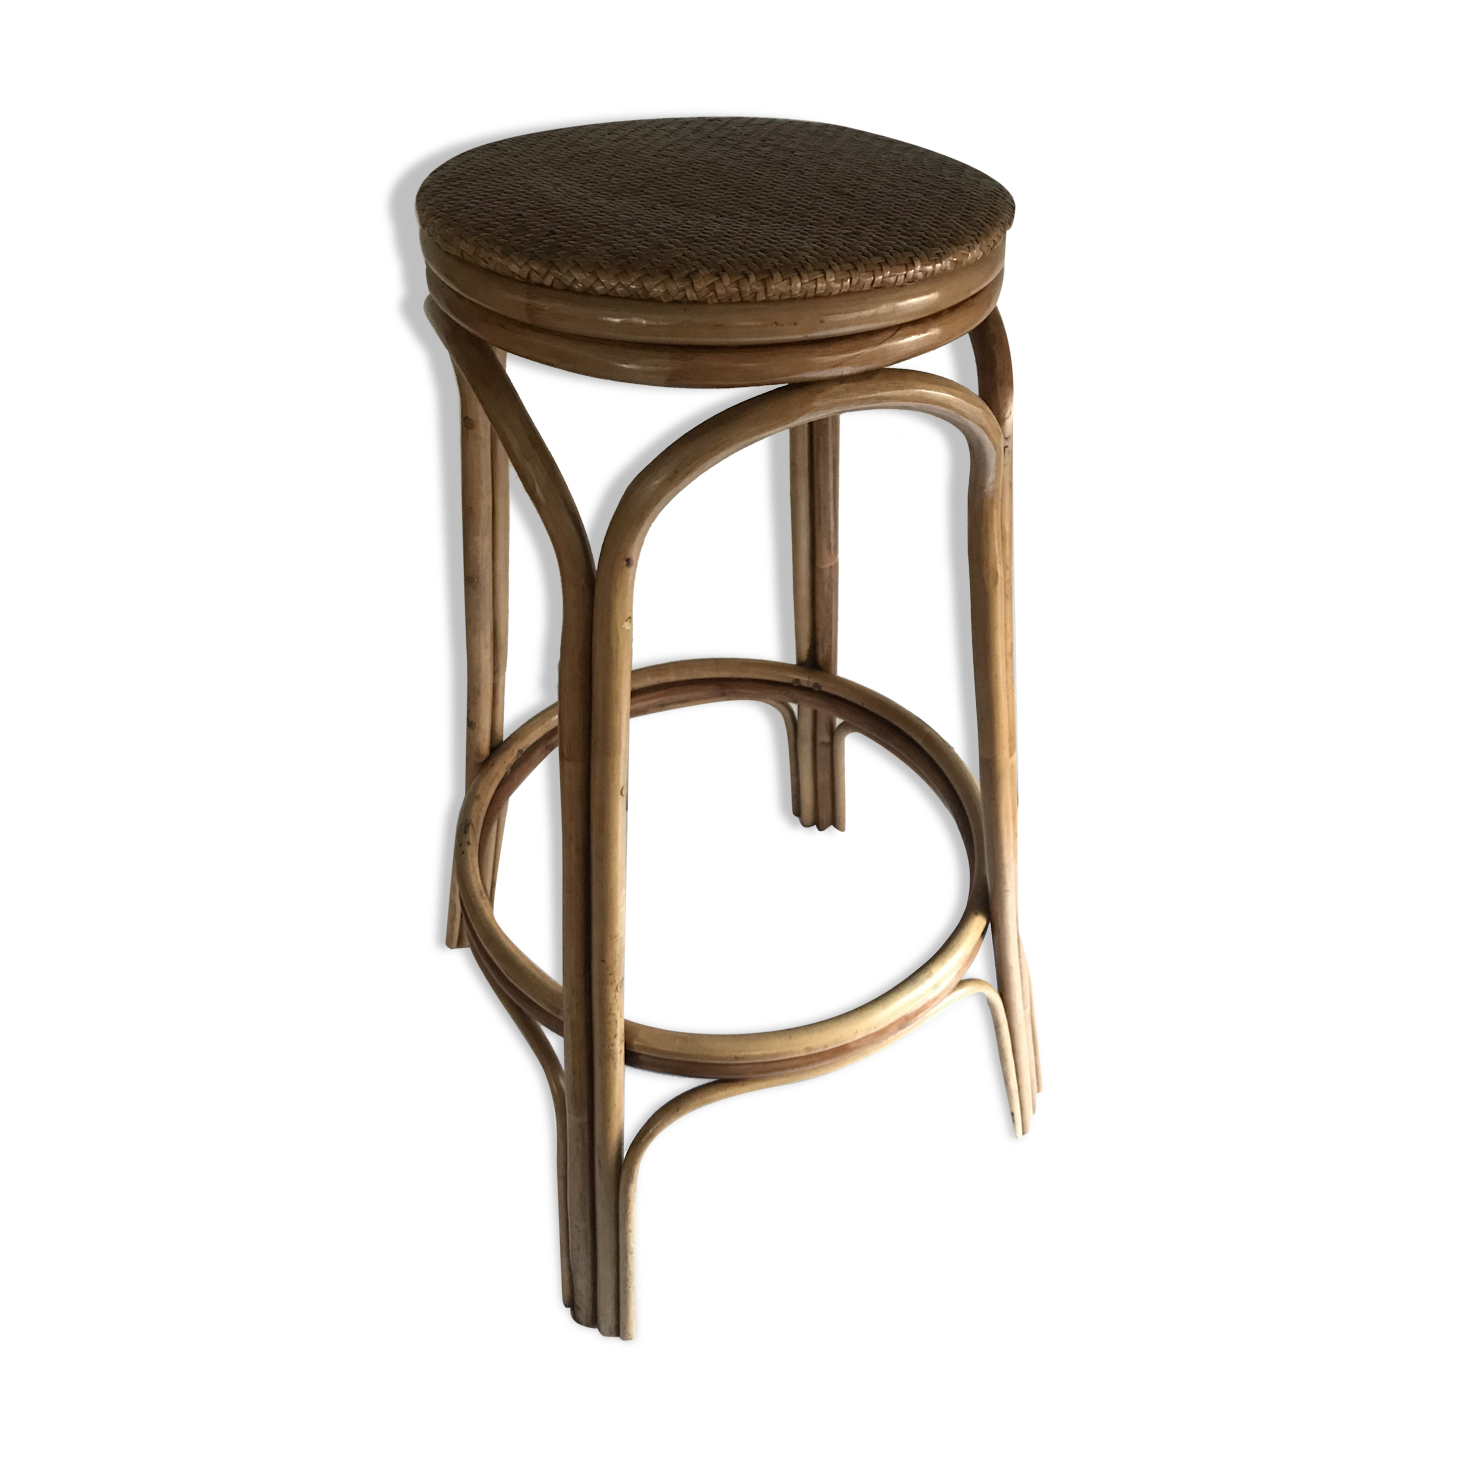 tabouret de bar haut simple petit tabouret de cuisine. Black Bedroom Furniture Sets. Home Design Ideas